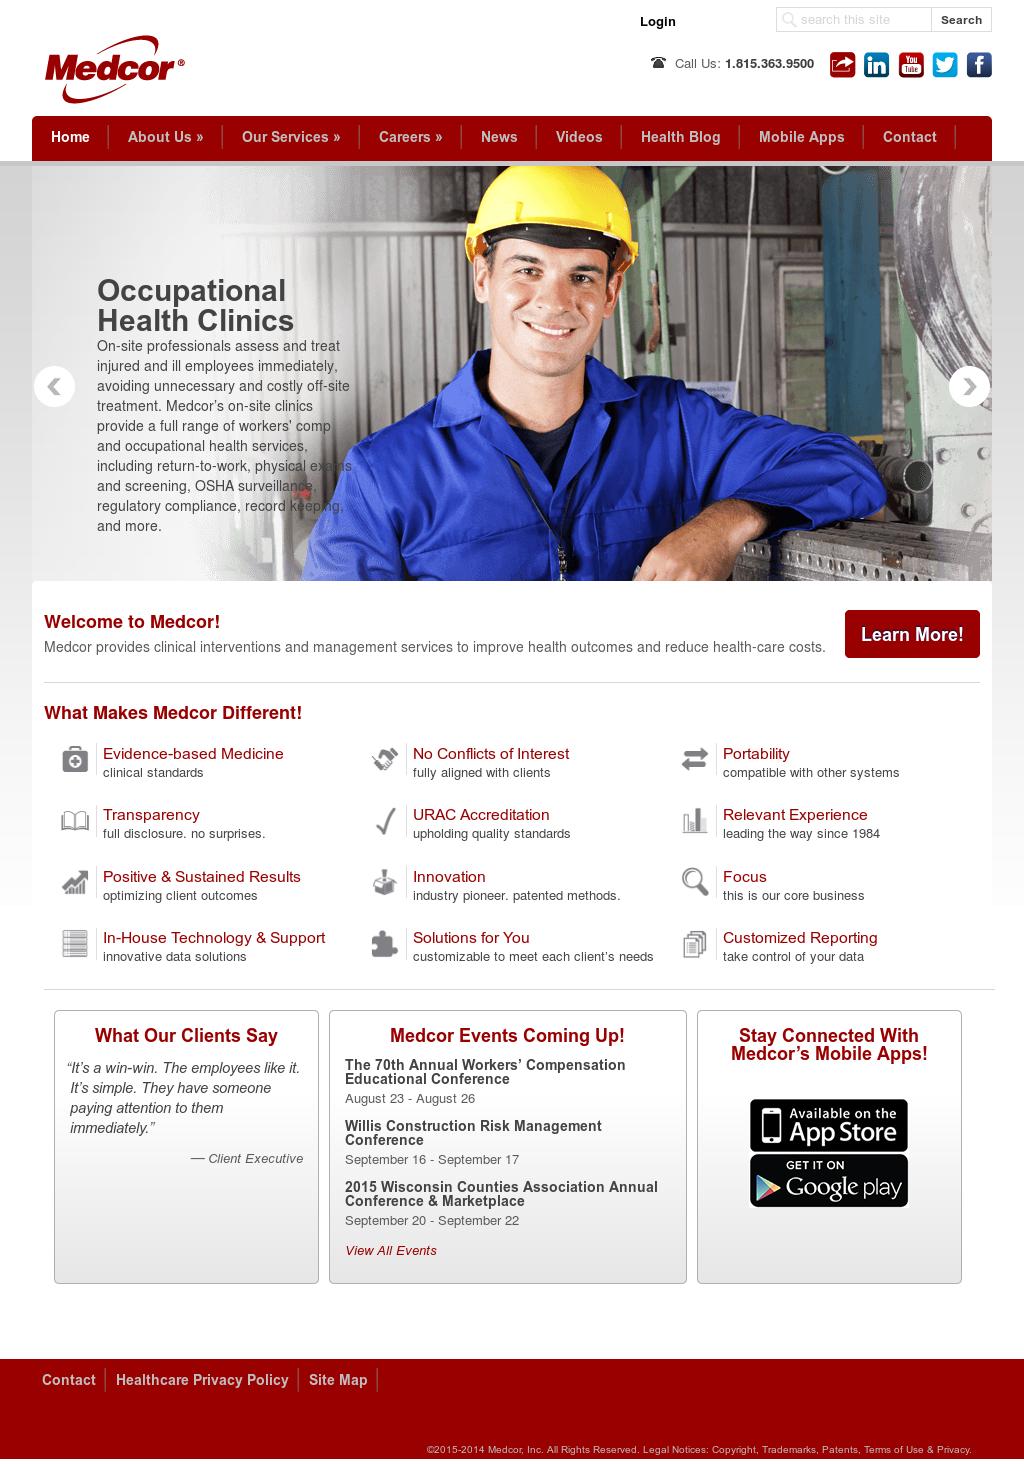 Medcor Competitors, Revenue and Employees - Owler Company